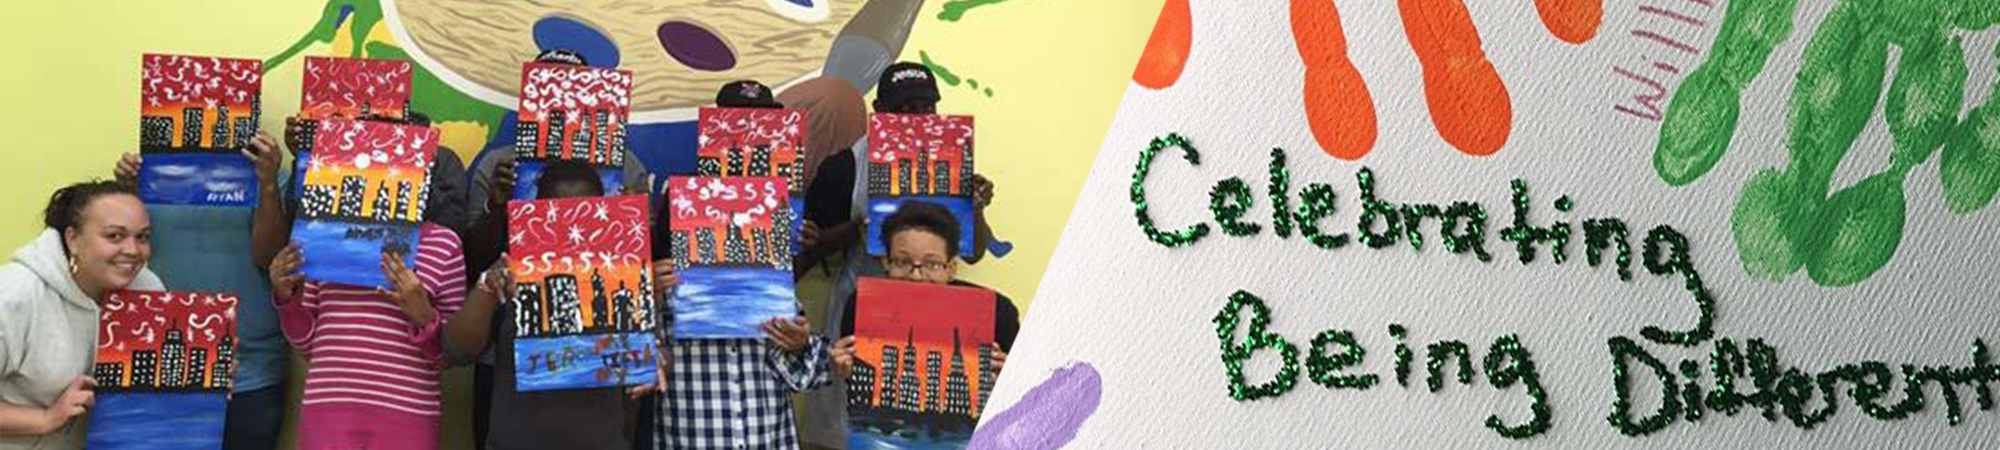 Celebrating being different- students holding their art